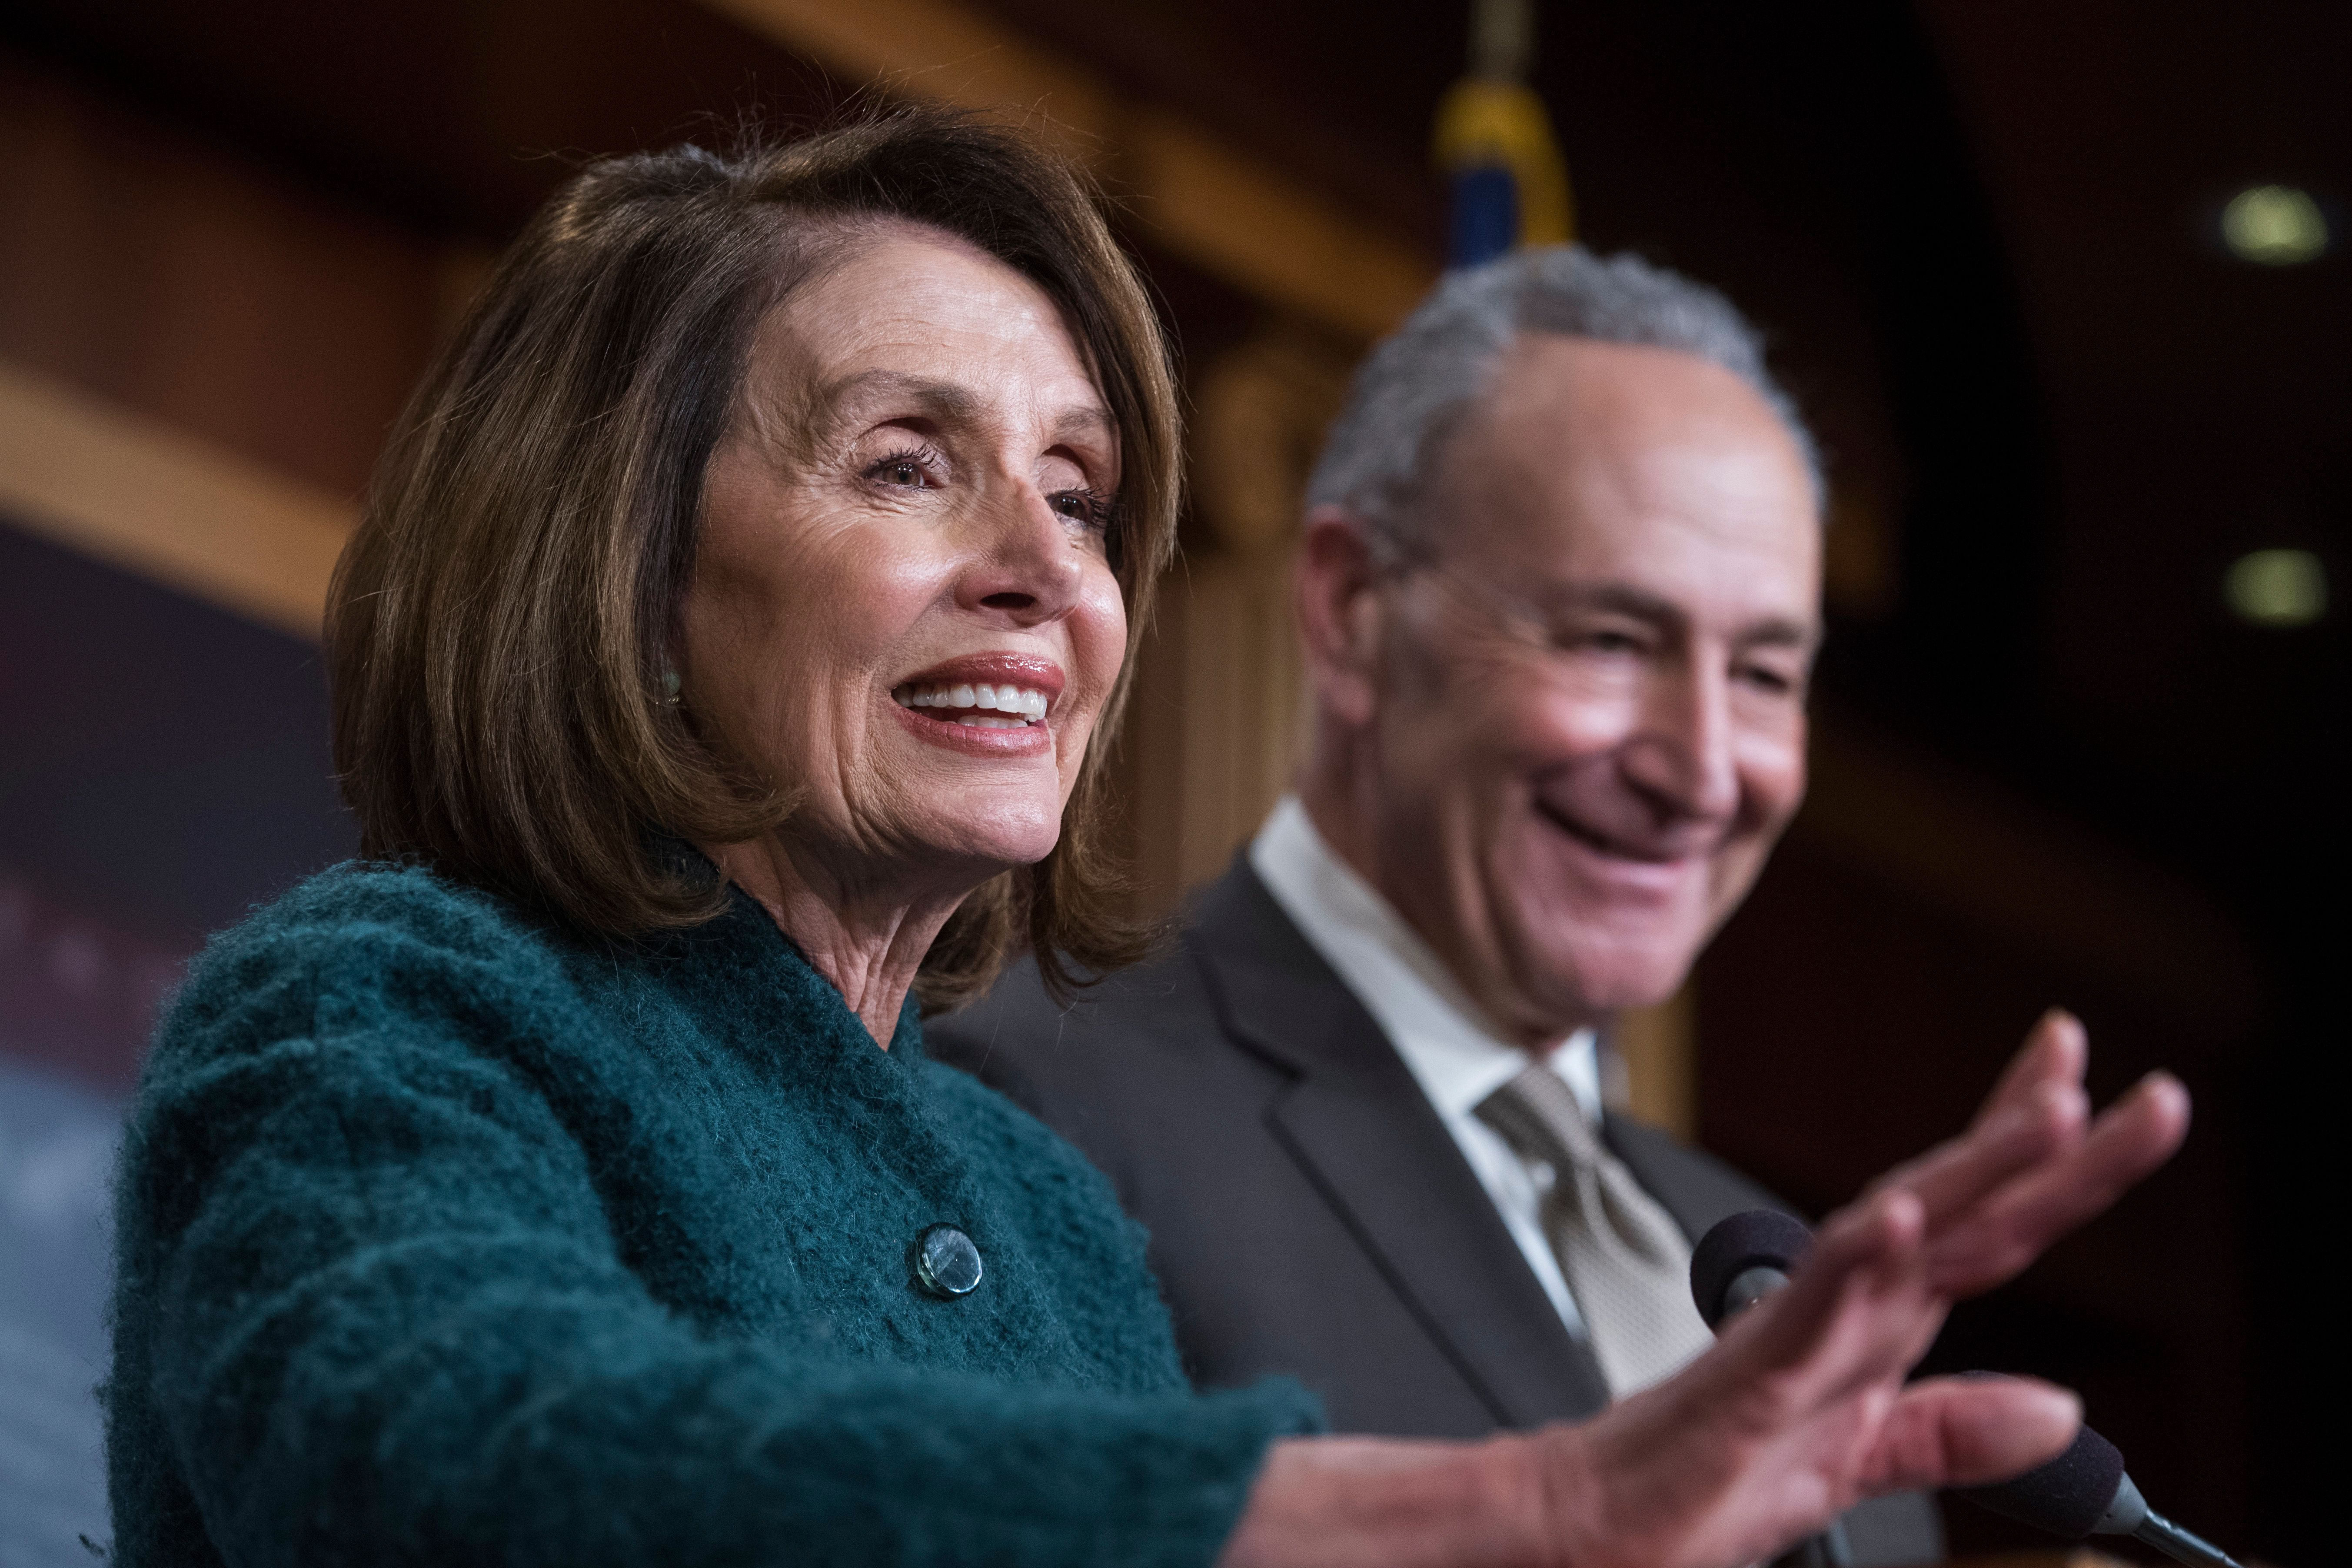 If Democrats retake the House, House Minority Leader Nancy Pelosi (D-Calif.) could once again serve as House speaker.